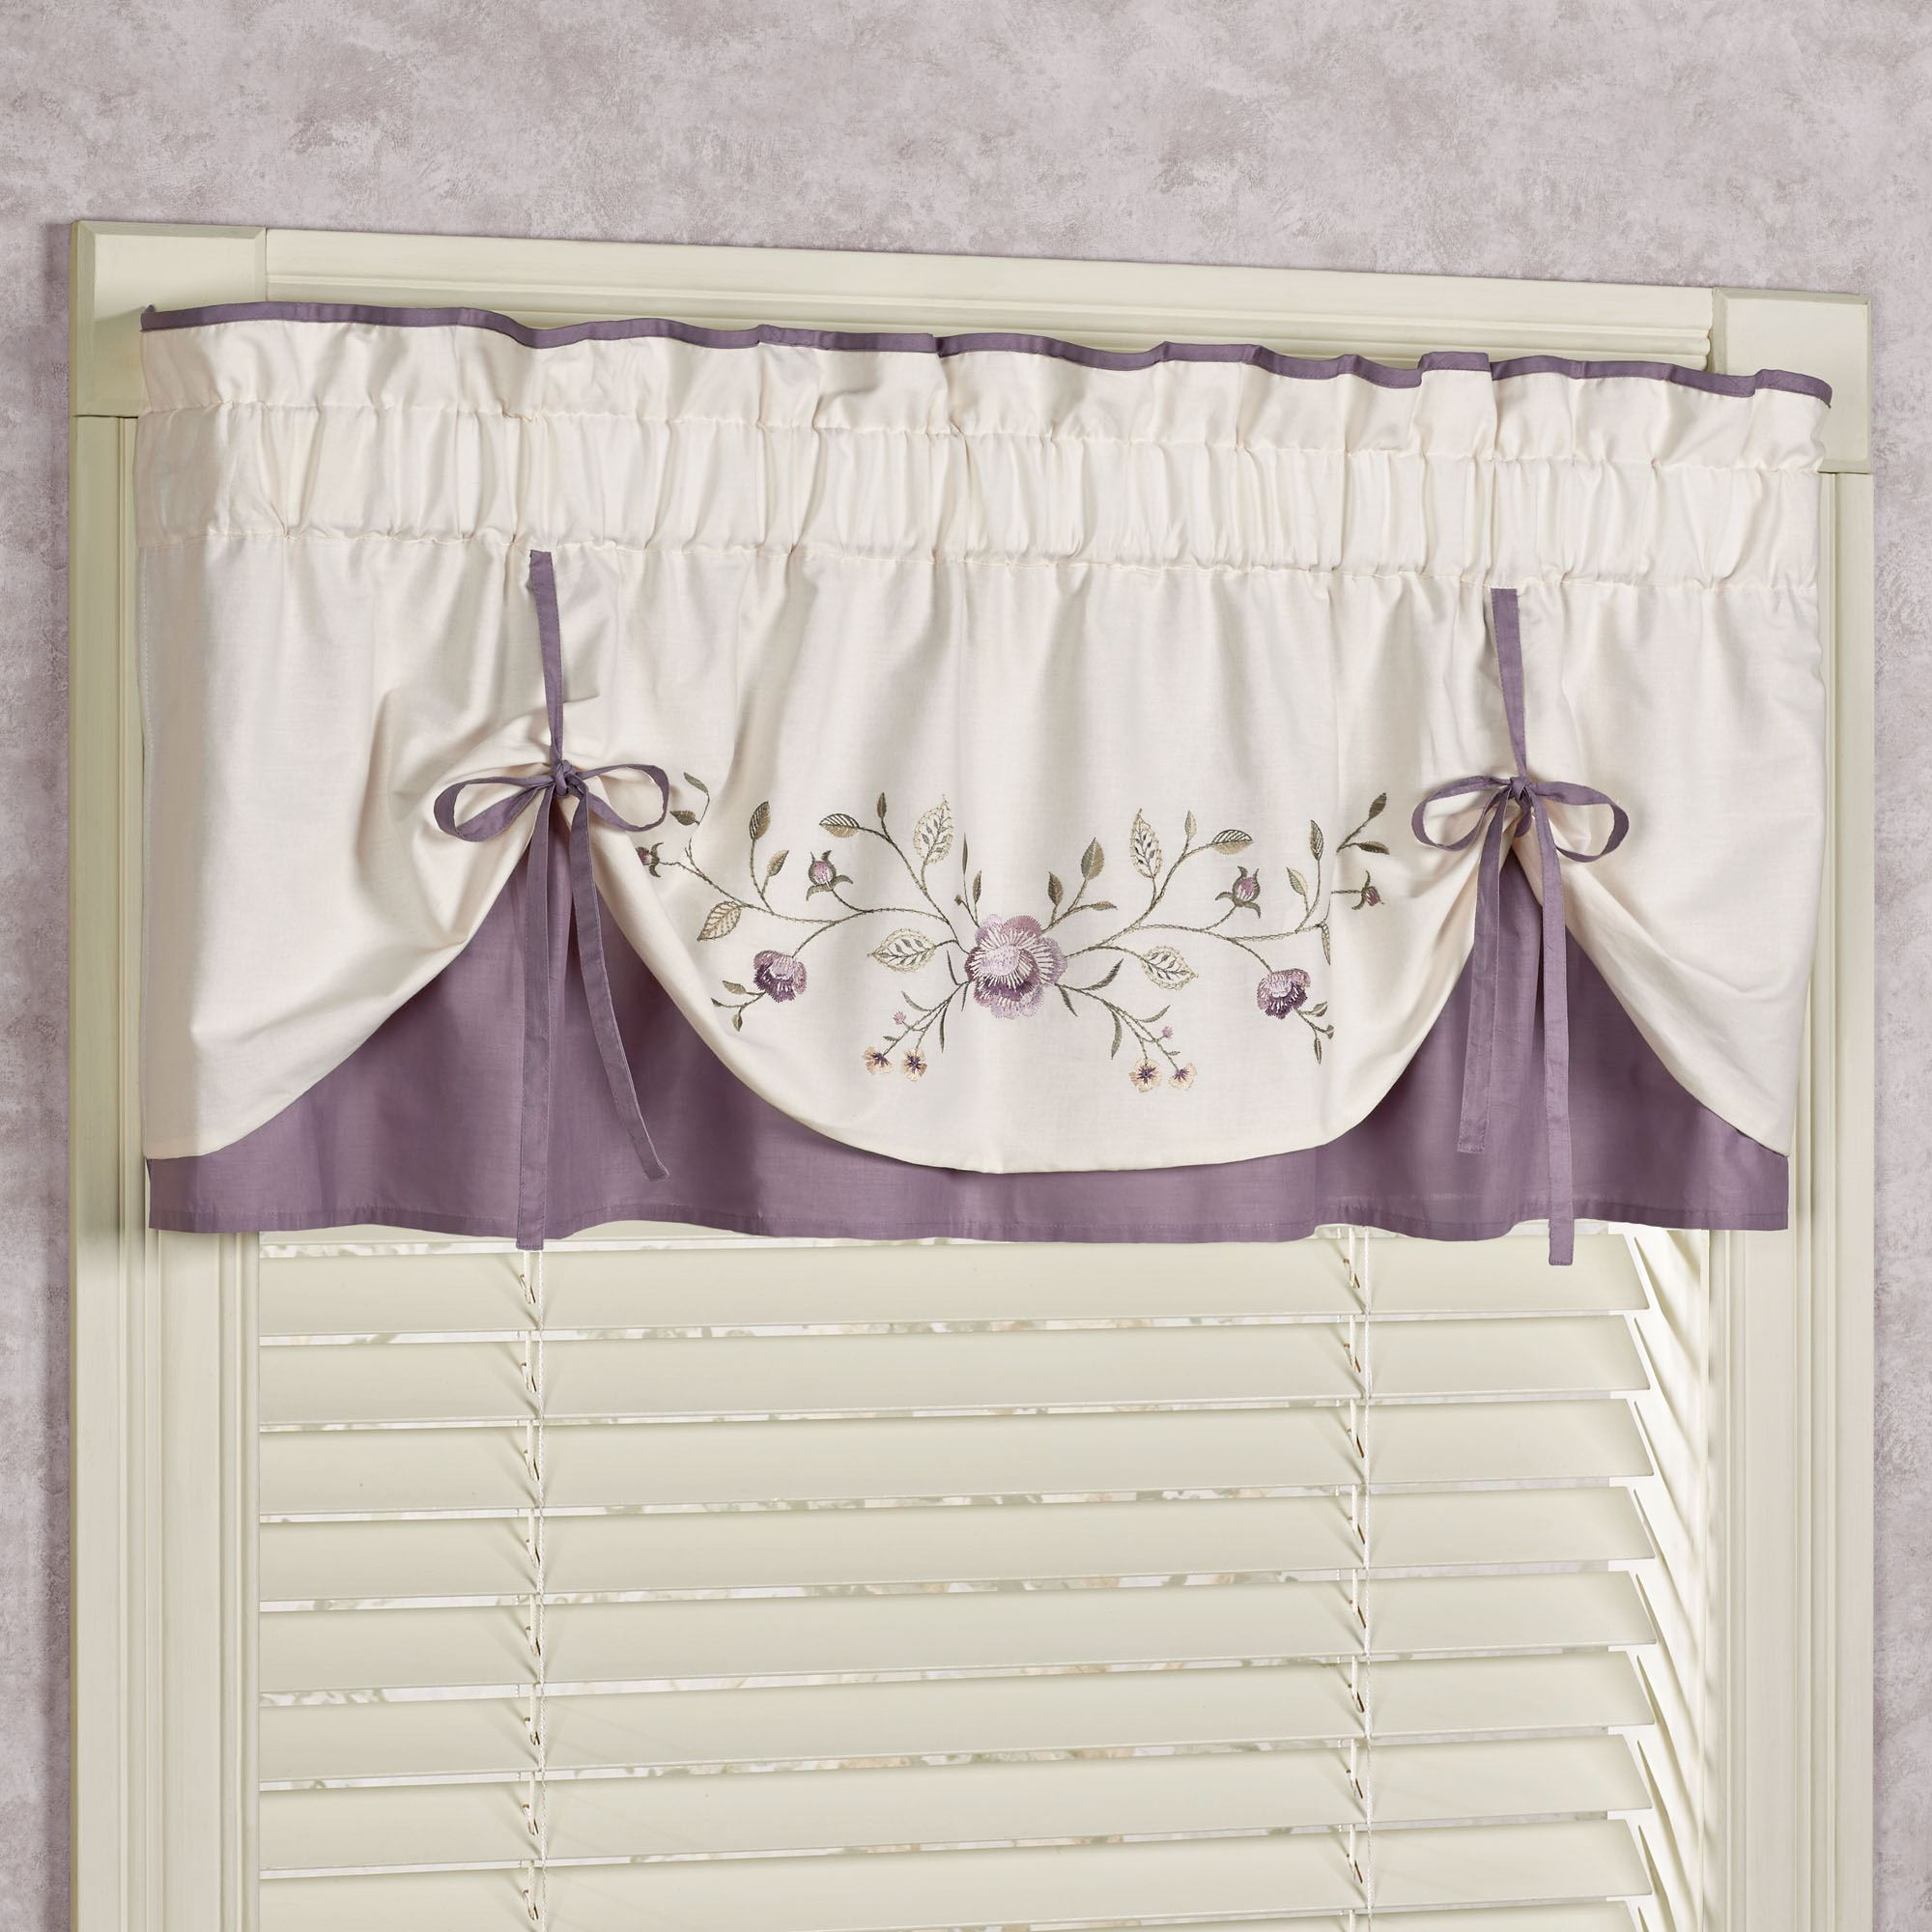 out curtains cm for bedroom valances ikea purple lilac majgull block valance of pair awesome